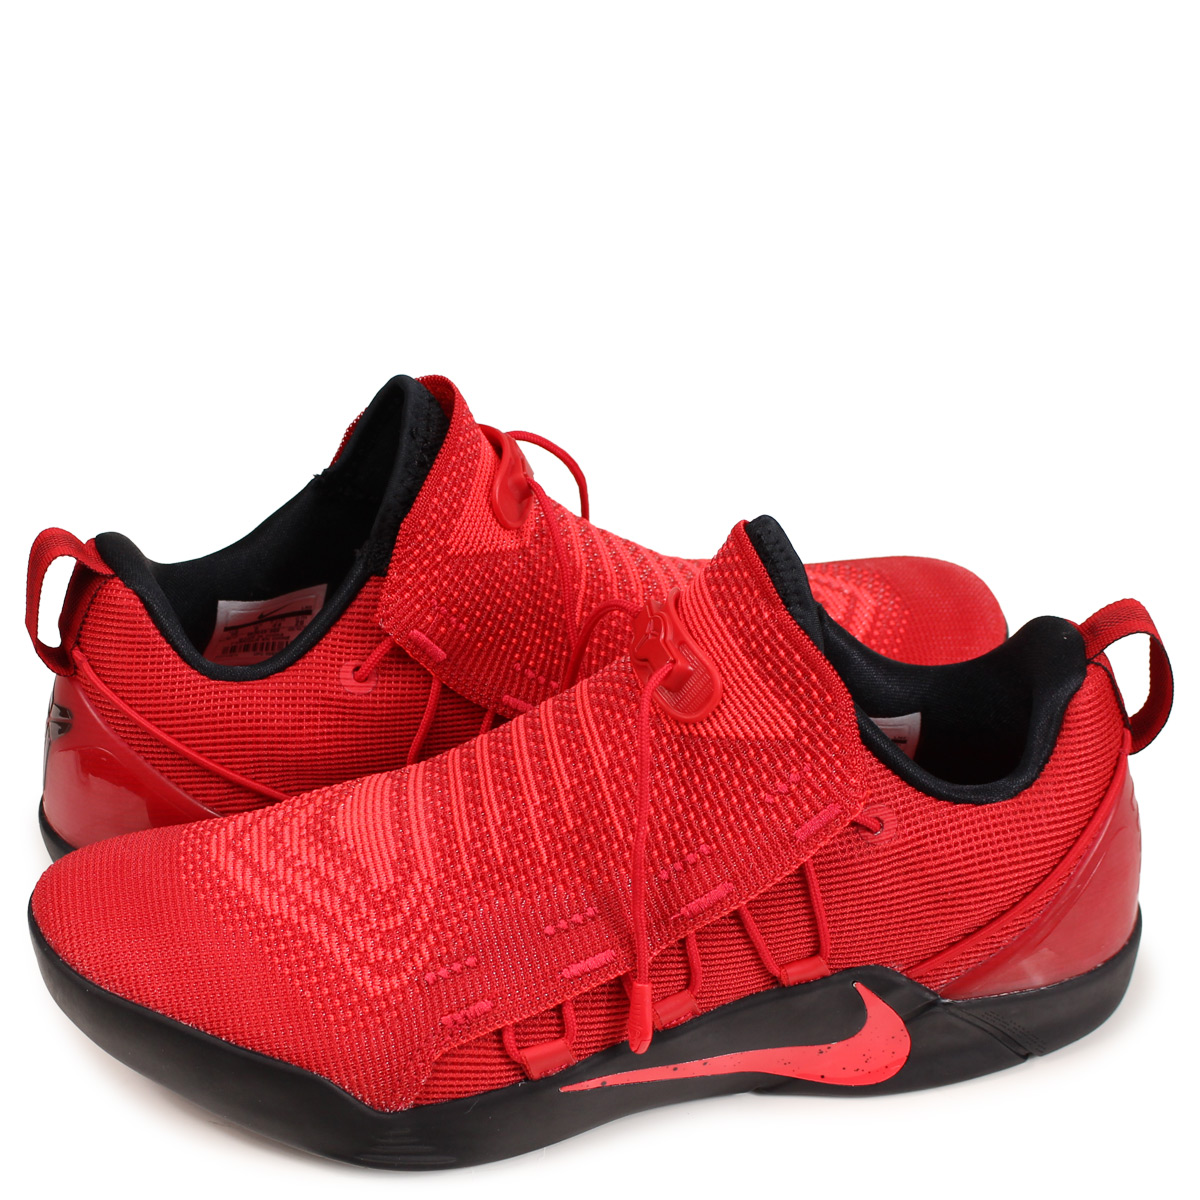 new style fcc80 64a9c Nike NIKE Corby A.D. Sneakers men KOBE A.D. NXT red 882,049-600